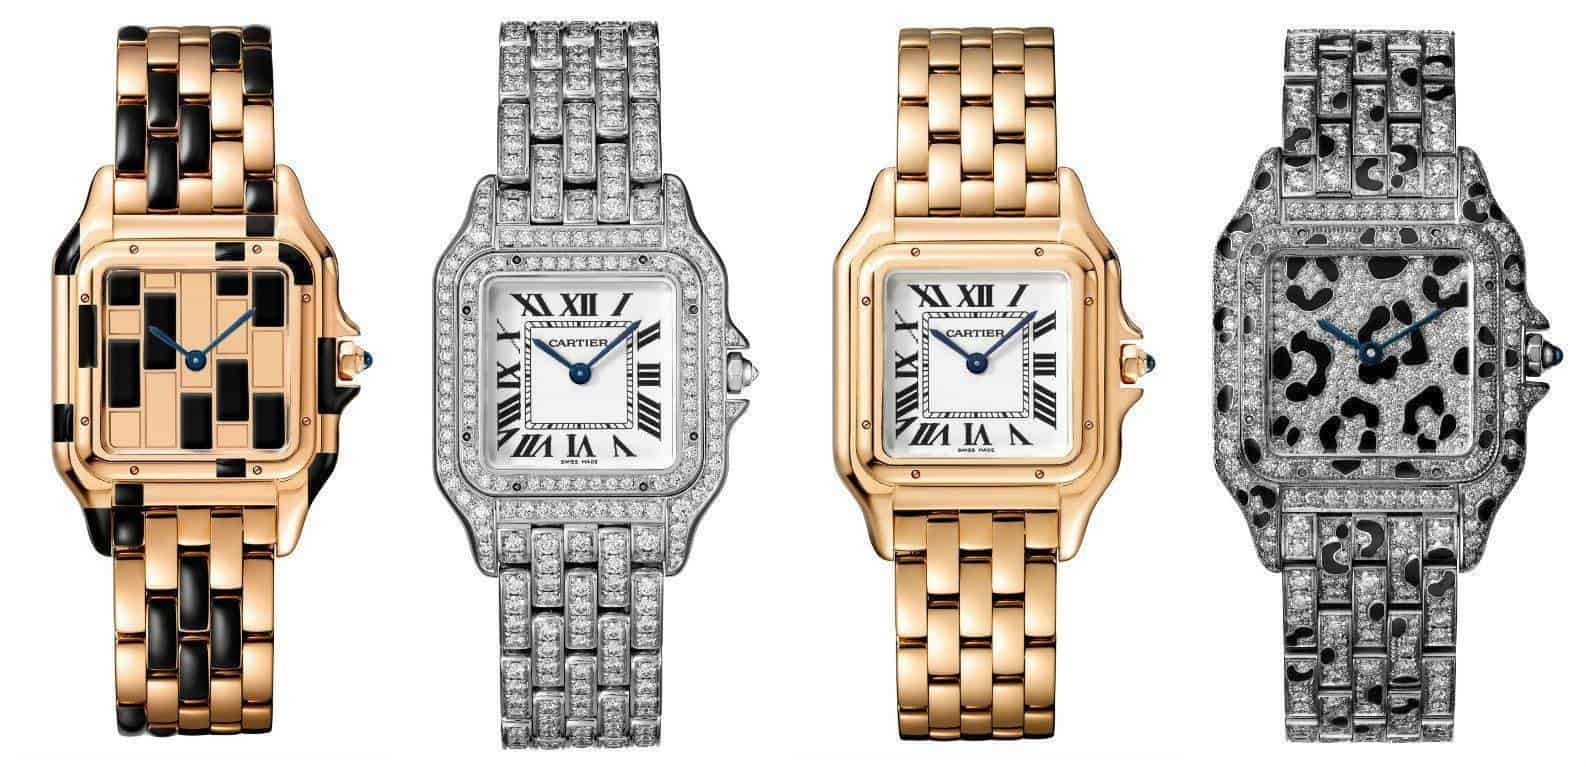 Panthere de Cartier watches